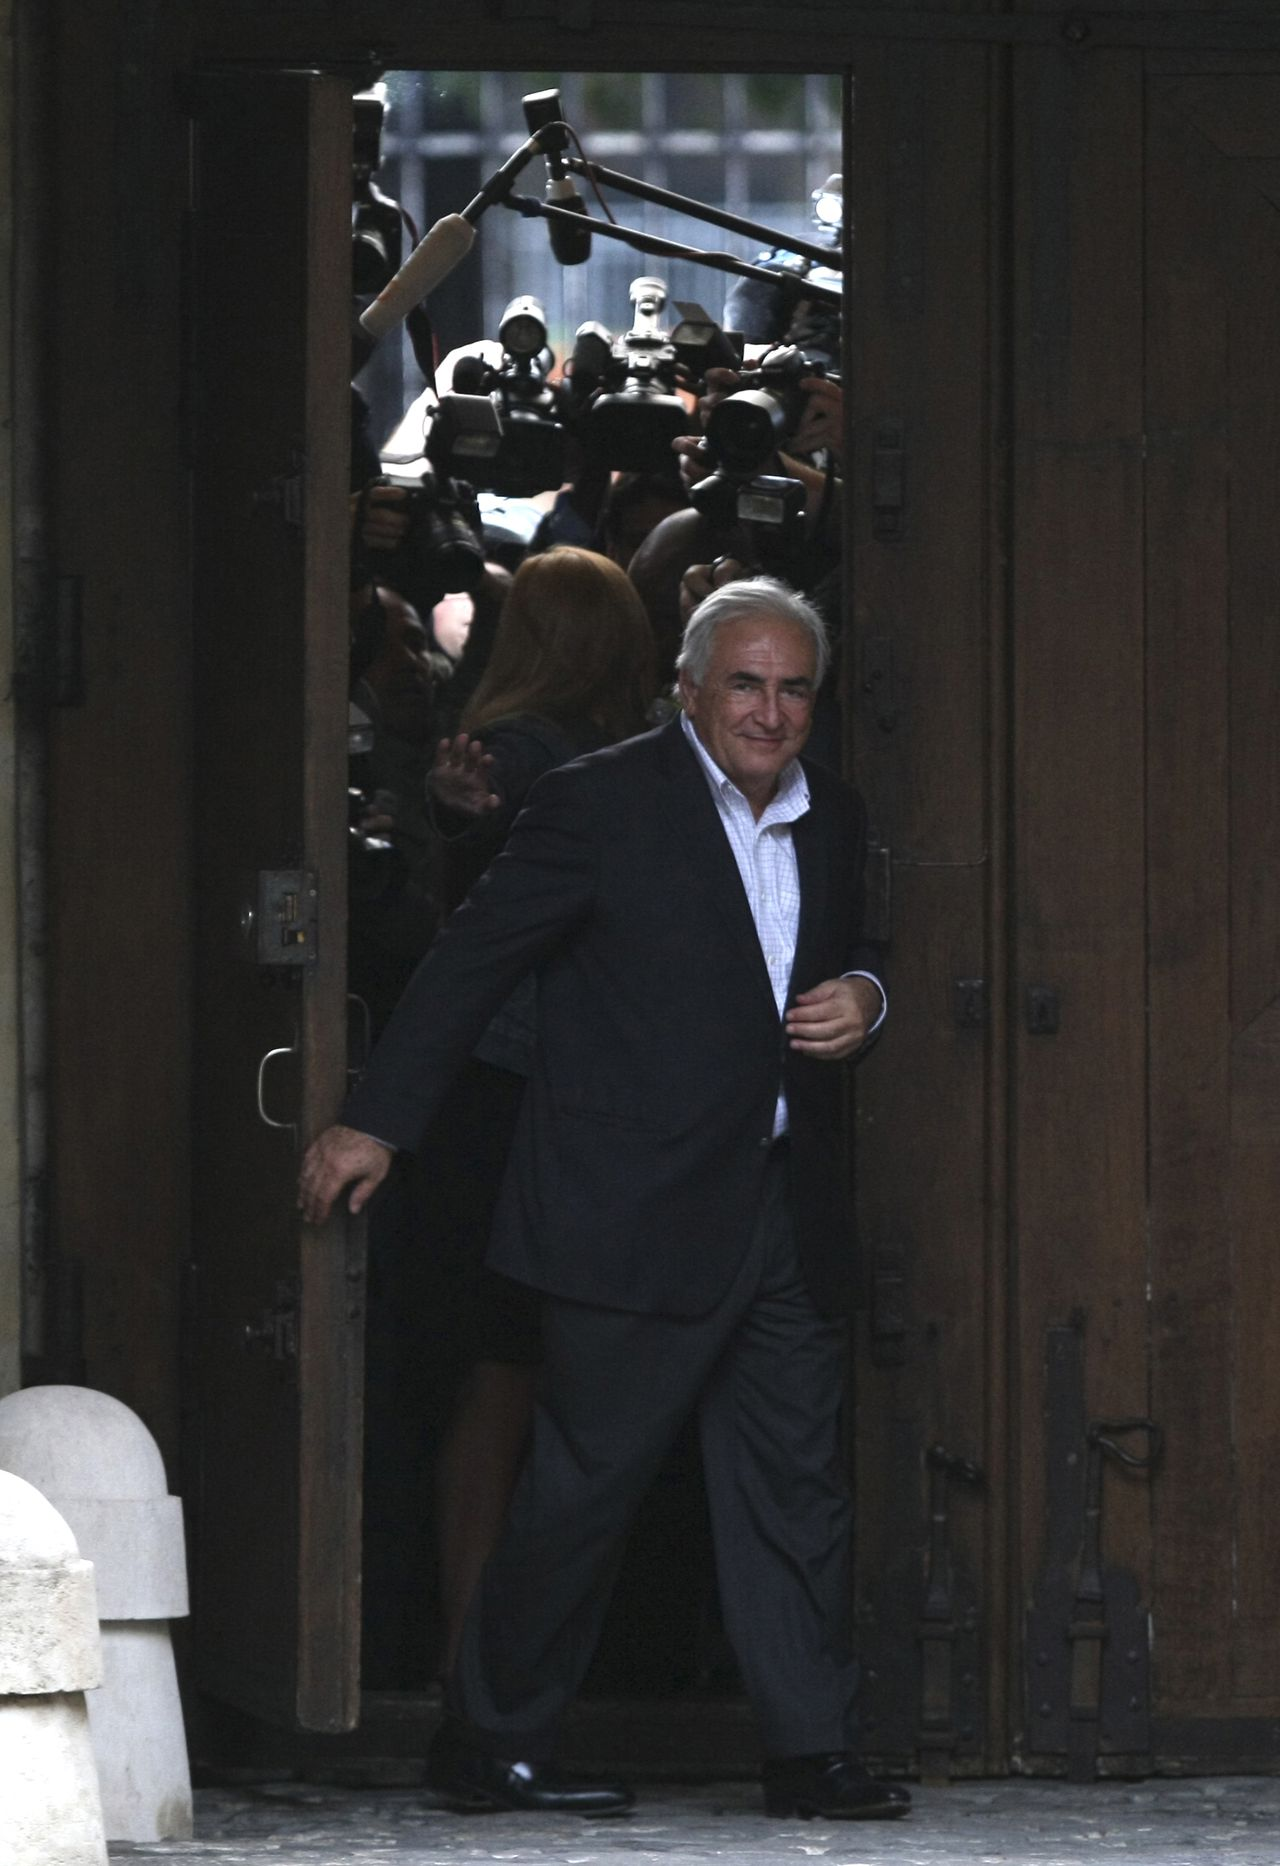 ALTERNATE CROP OF XLR111- Dominique Strauss-Kahn, former head of the International Monetary Fund, arrives in the courtyard of his home in Paris, France, Sunday, Sept. 4, 2011. Dominique Strauss-Kahn has returned home to France for the first time since a New York hotel maid accused him of attempted rape, unleashing a scandal that dashed his chances for the French presidency. (AP Photo/Claude Paris)